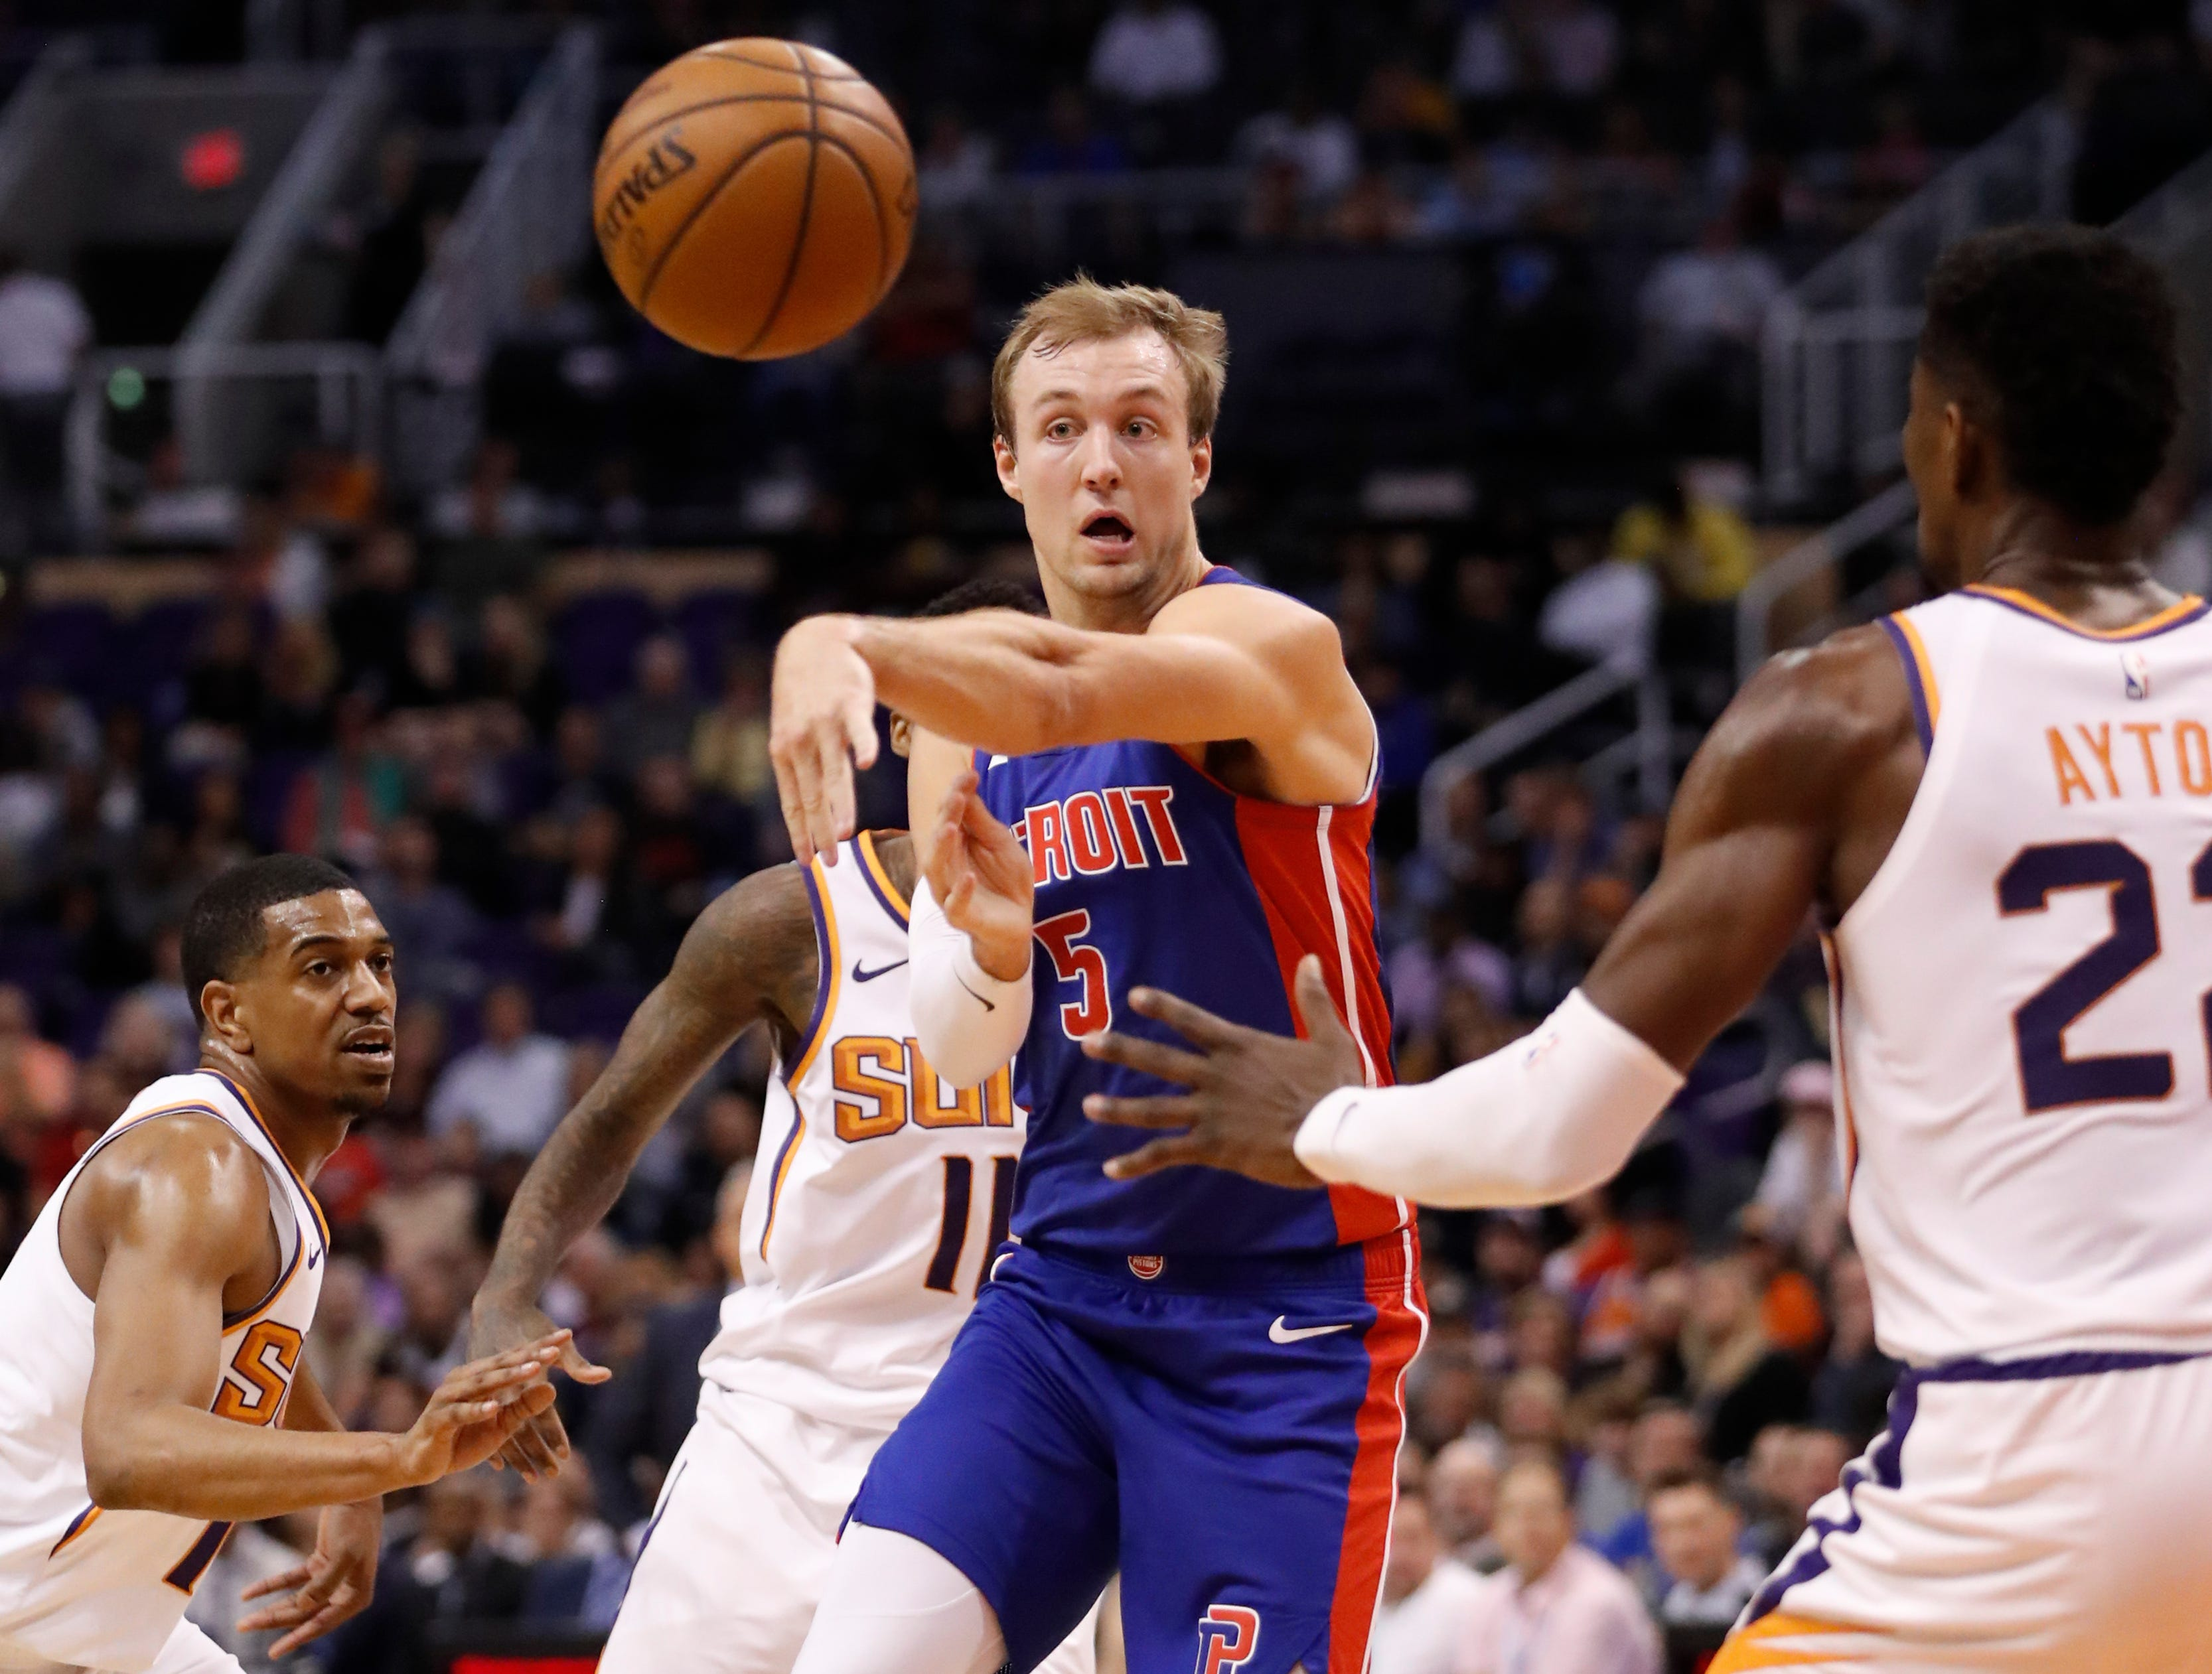 Detroit Pistons guard Luke Kennard (5) passes the ball as Phoenix Suns center Deandre Ayton (22) defends during the first half.